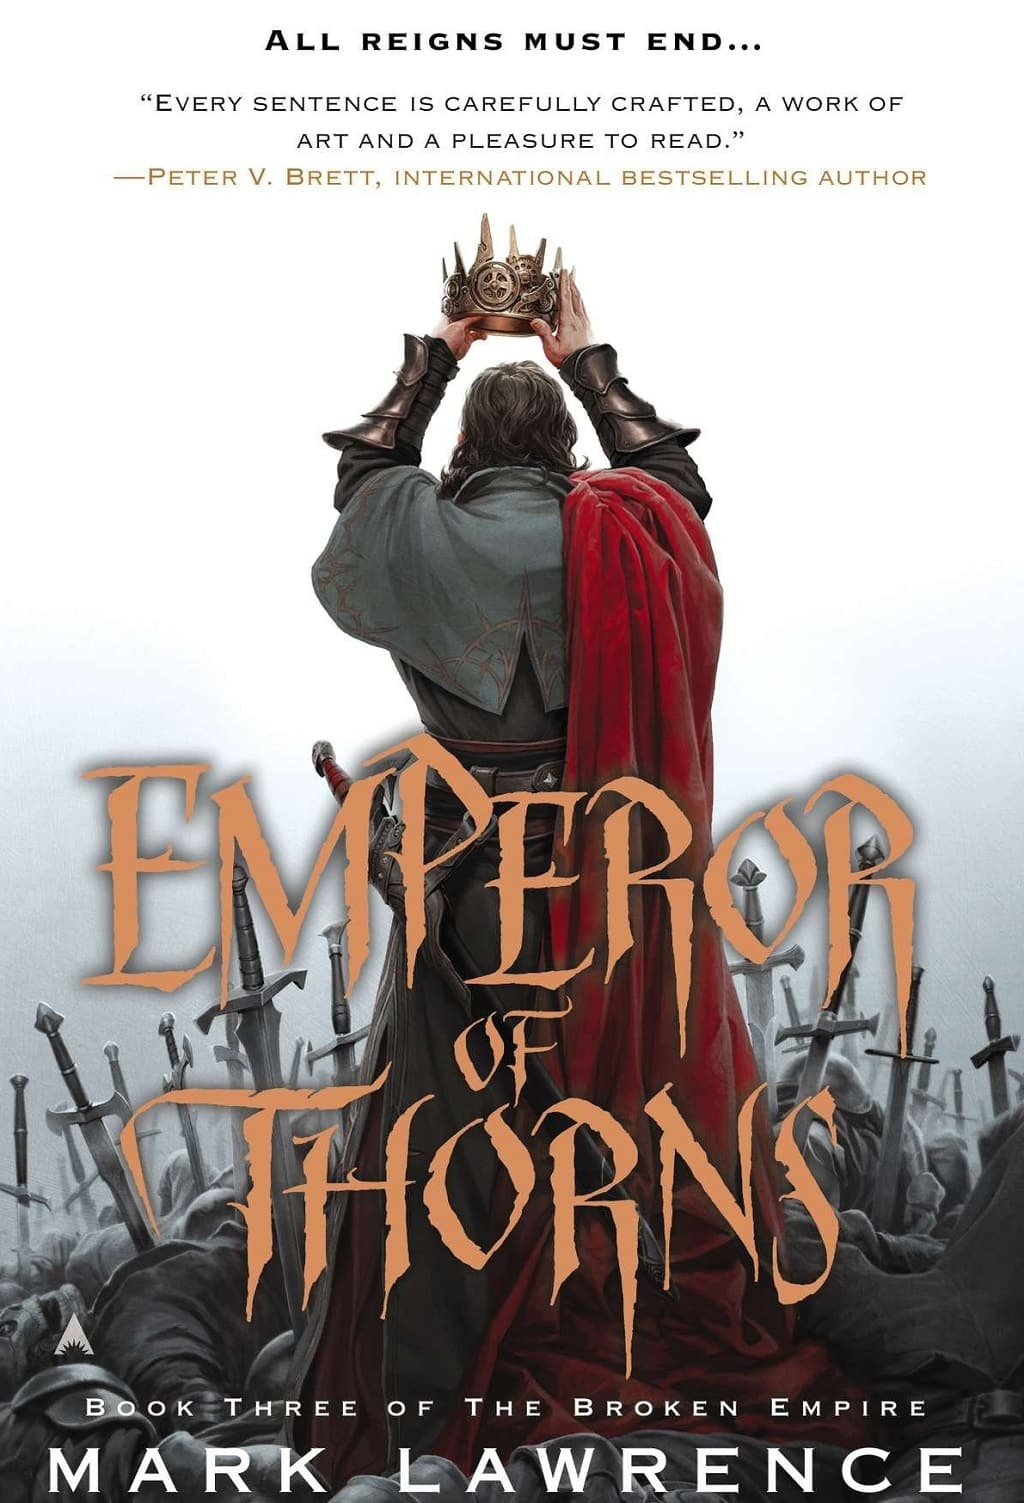 Emperor of Thorns Audiobook Free Download and Listen